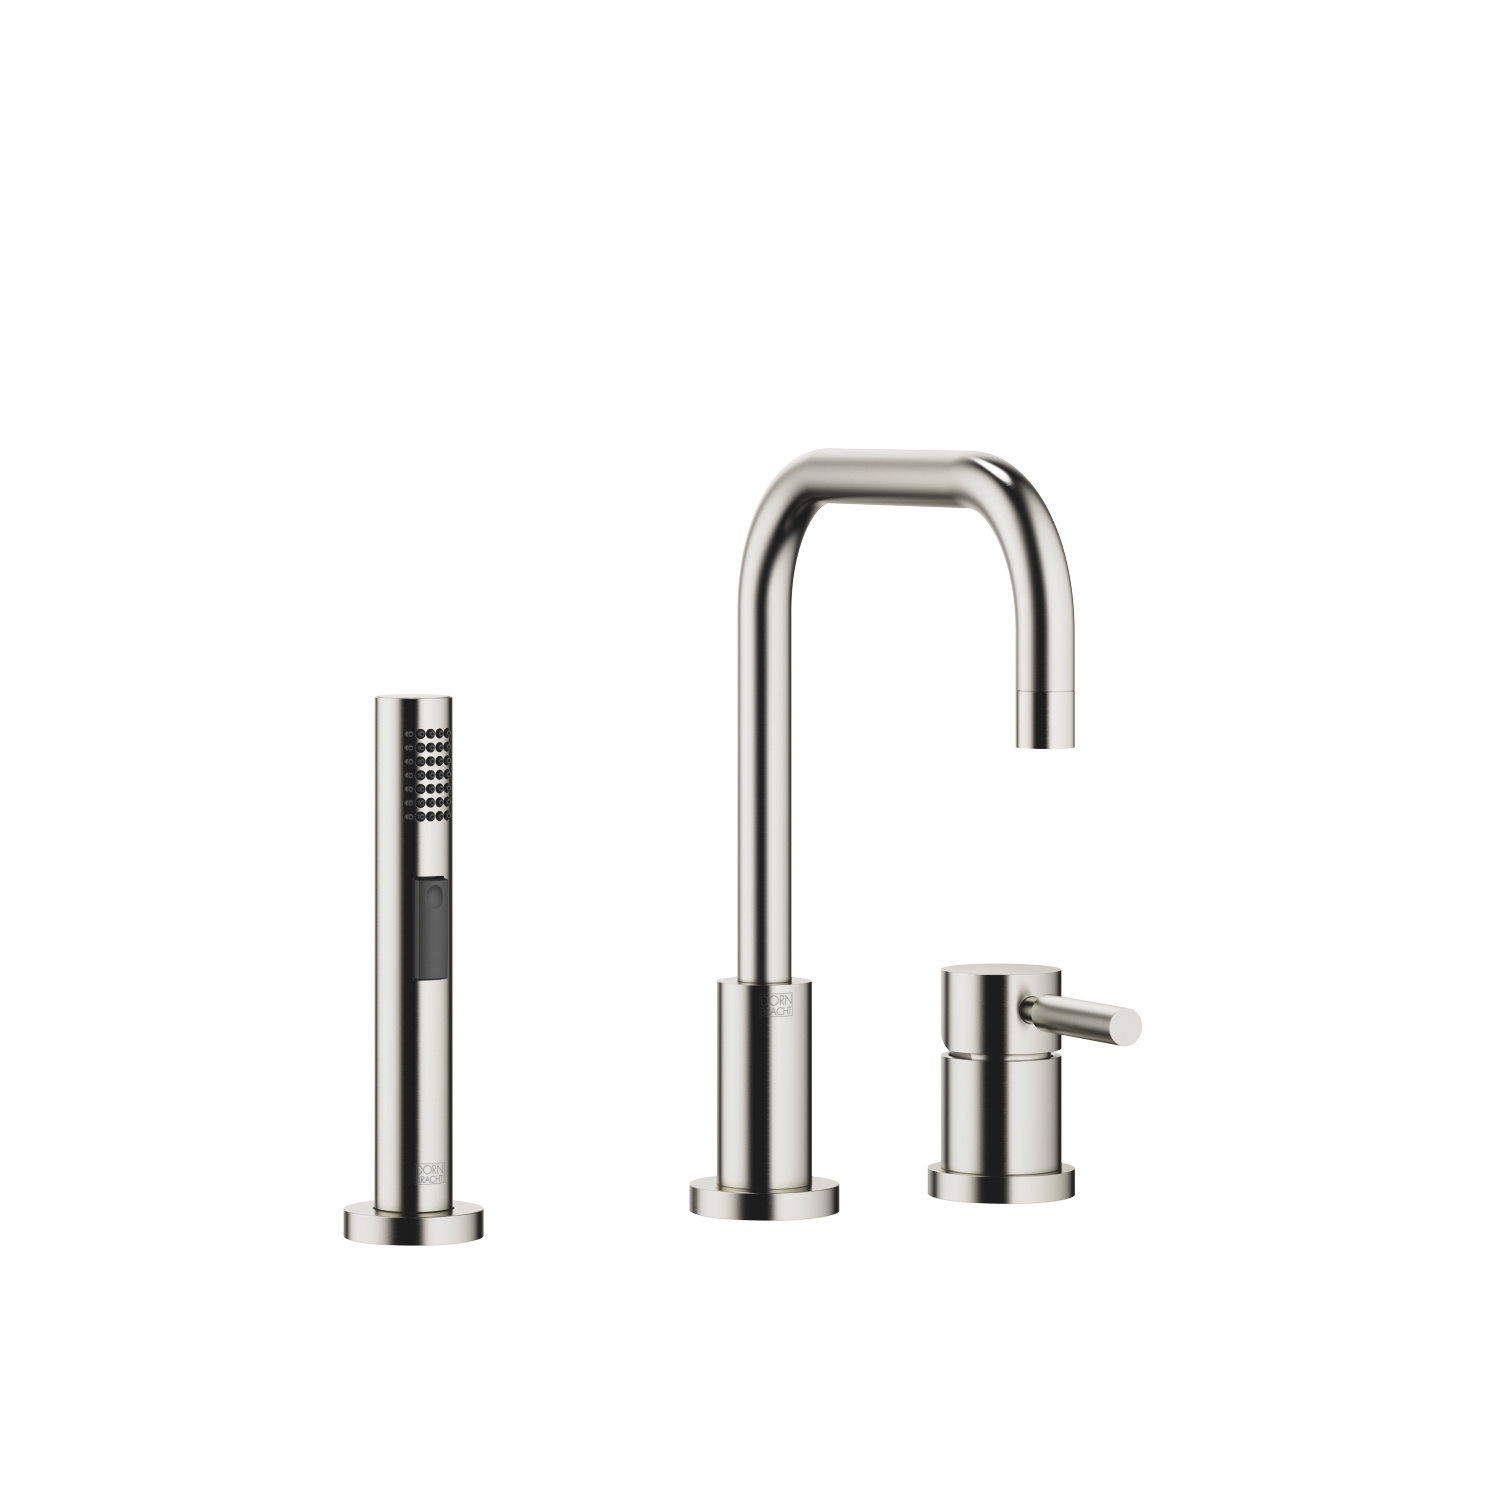 Two-hole mixer with individual rosettes with rinsing spray set - platinum matt